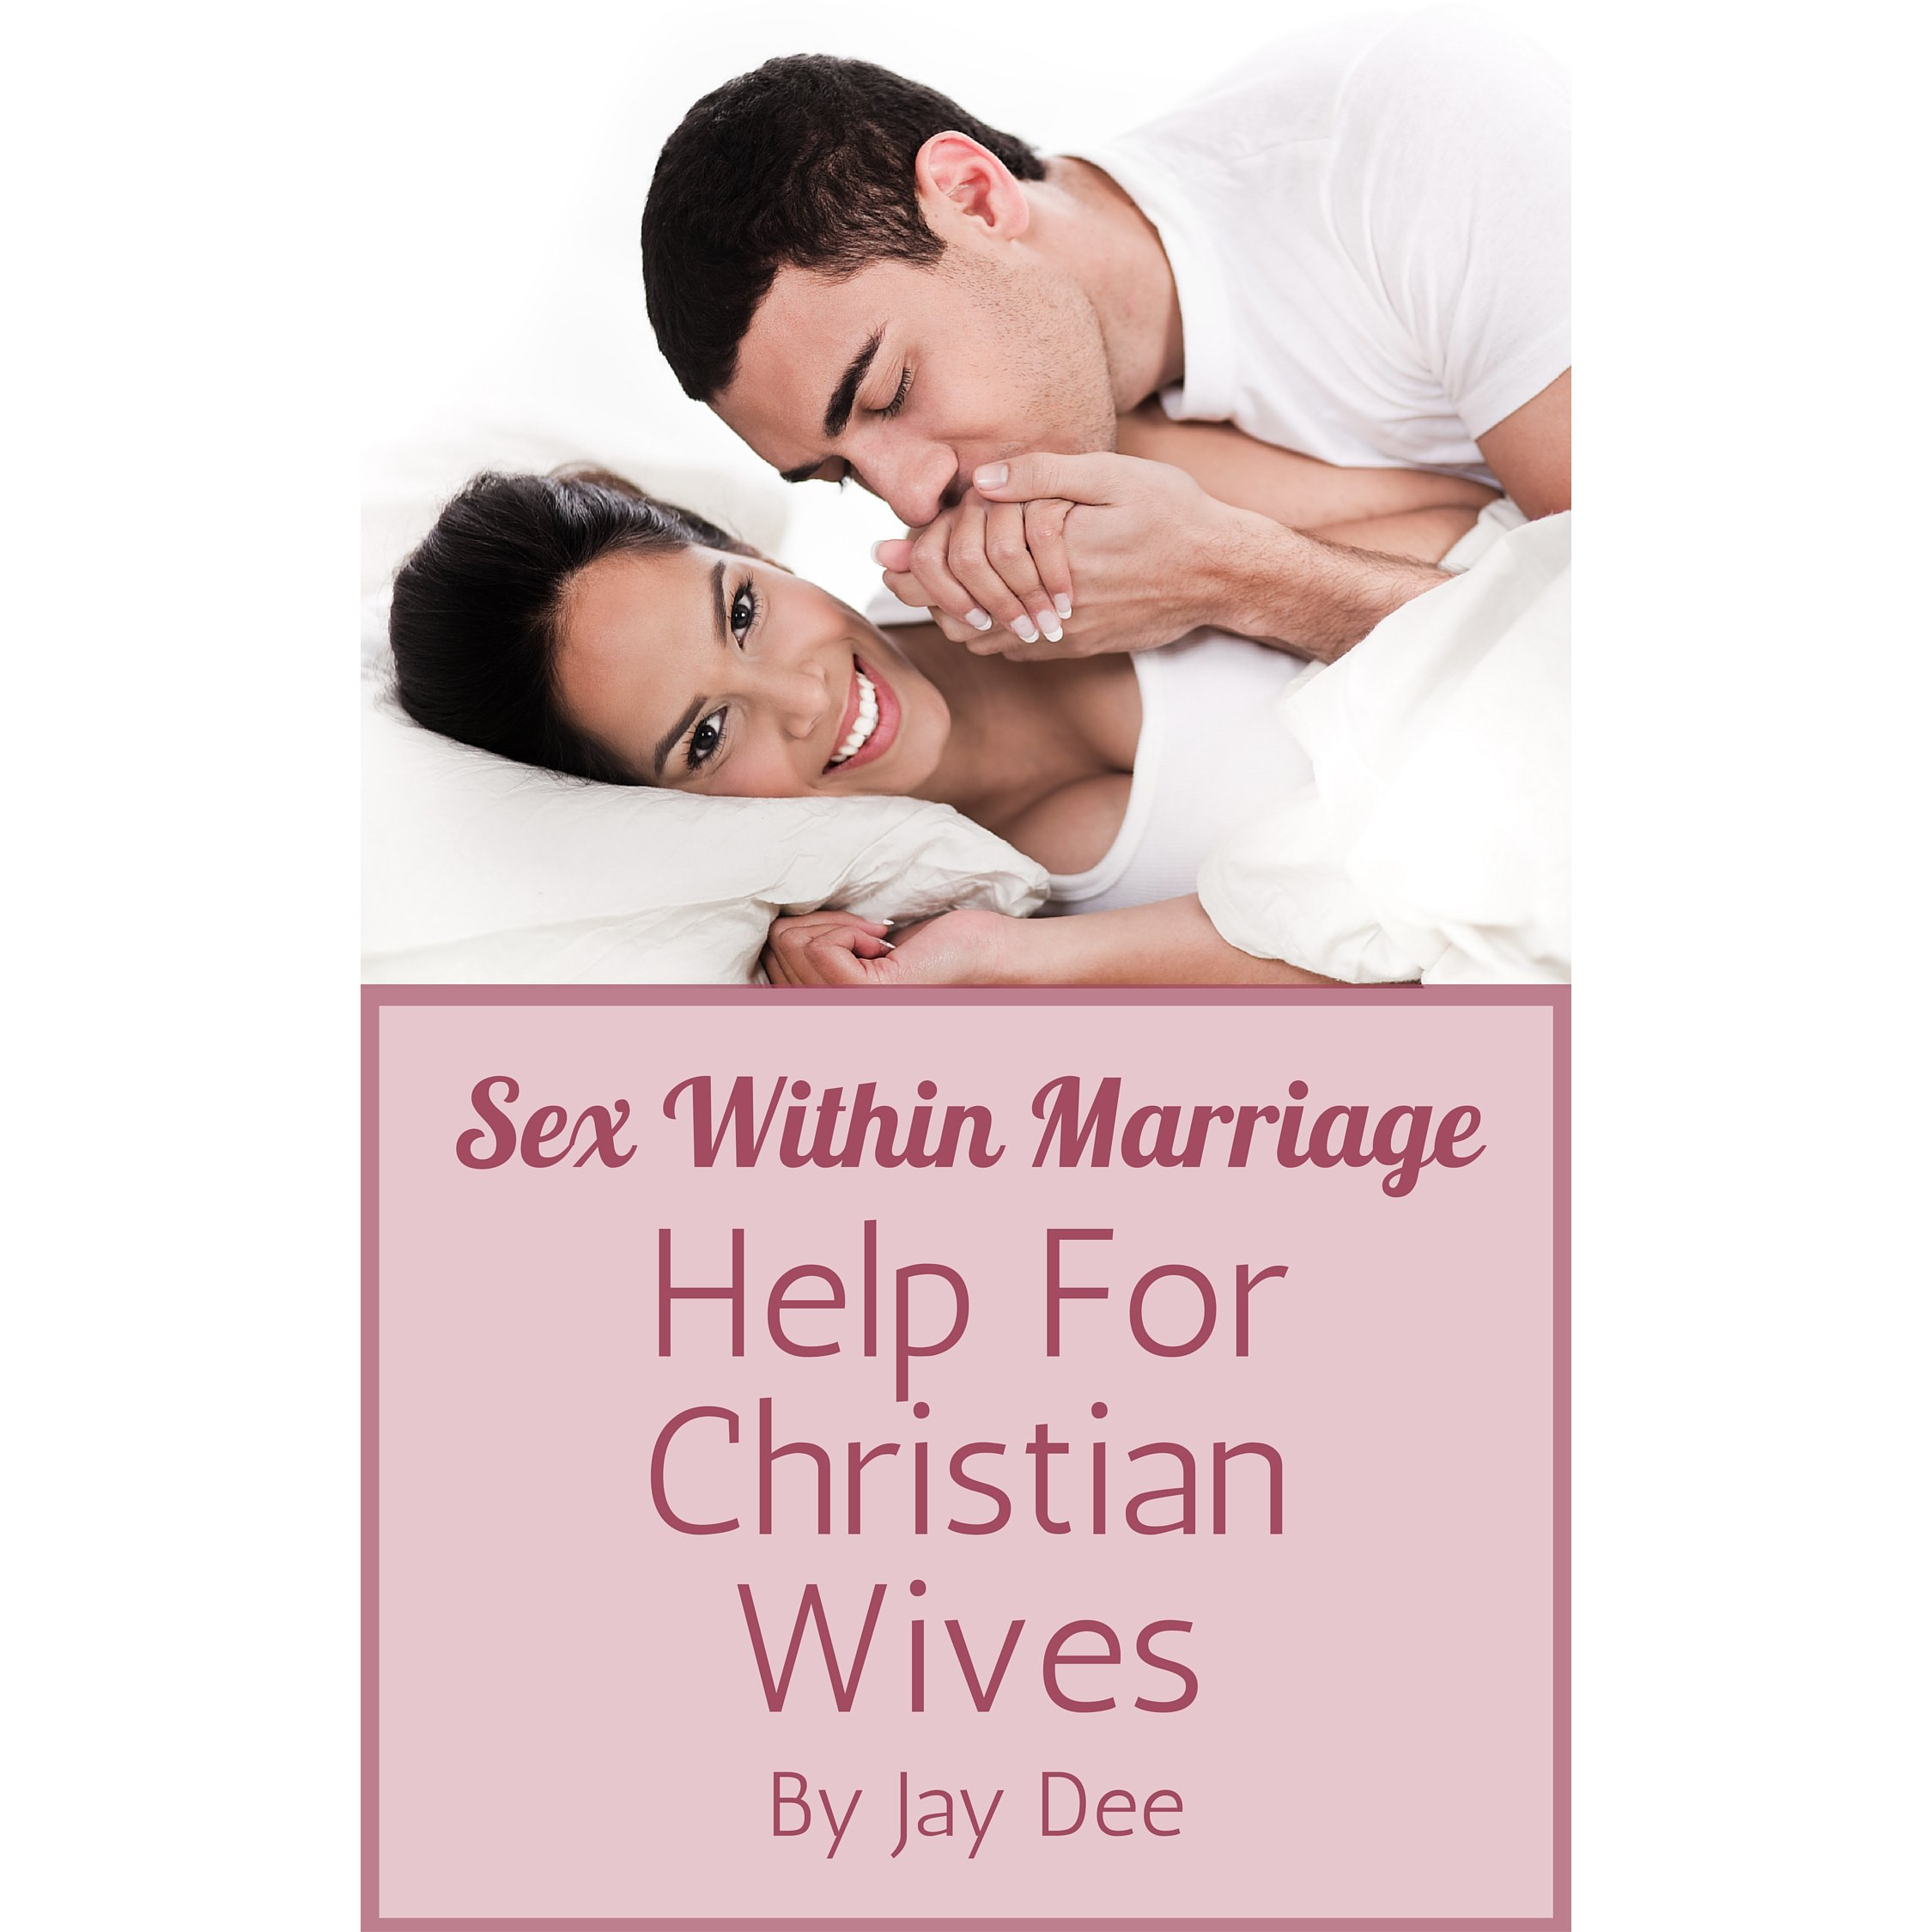 christian marriages sexual